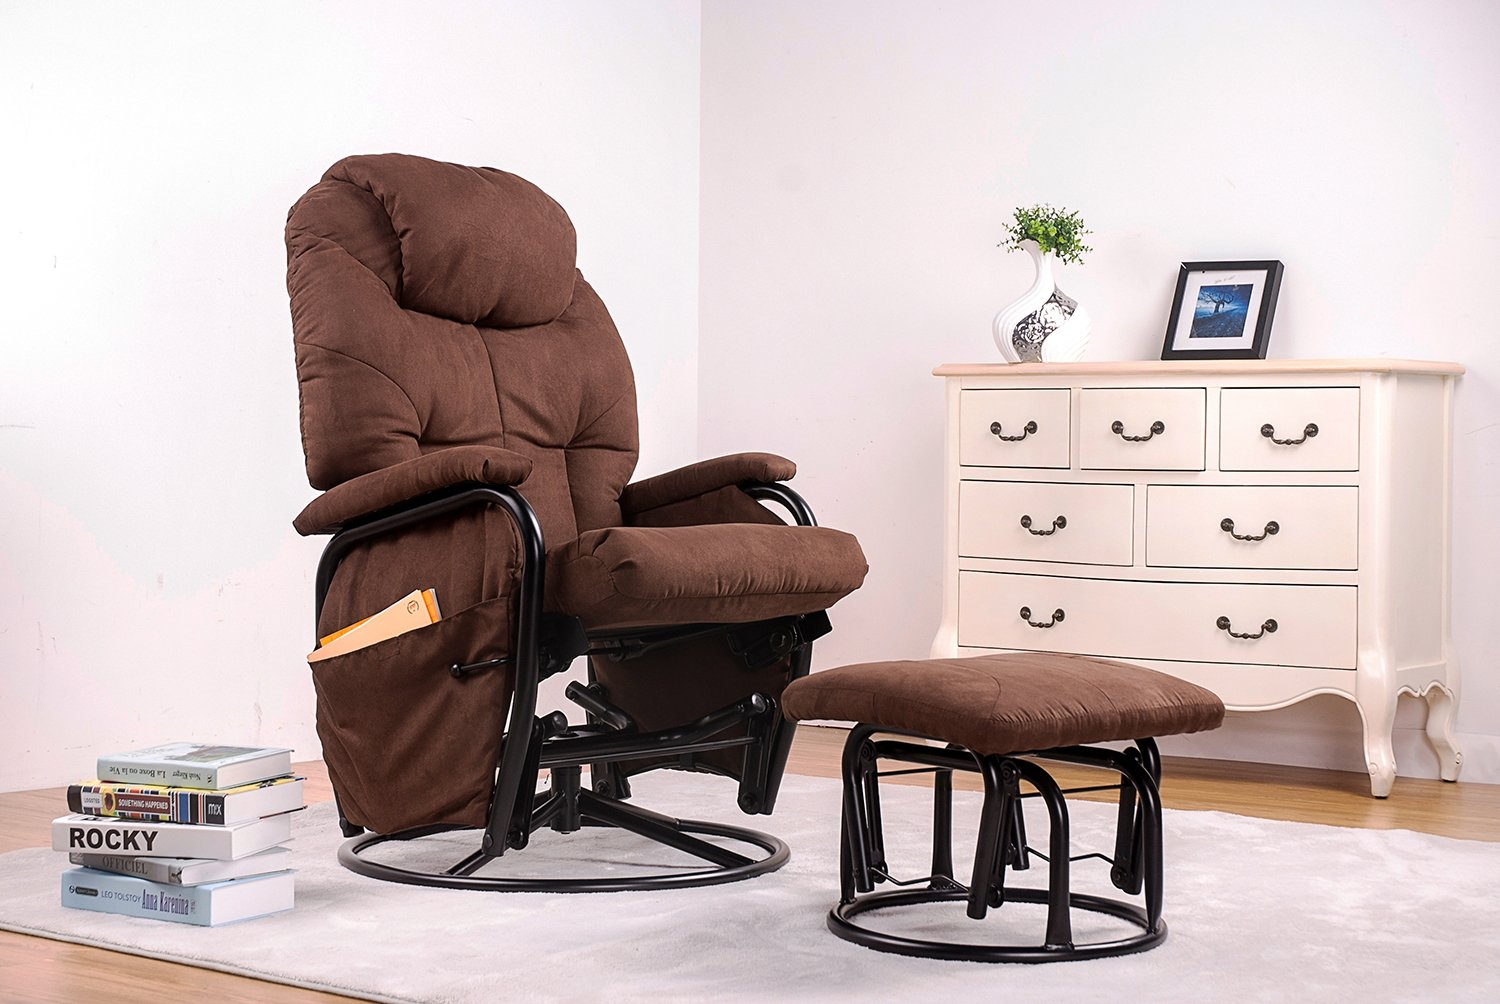 Amazon.com : Merax® Home Furniture Ergonomic Suede Fabric Swivel Glider  Recliner Rocking Chair and Ottoman Set Glider Rocker (Chocolate) : Baby - Amazon.com : Merax® Home Furniture Ergonomic Suede Fabric Swivel